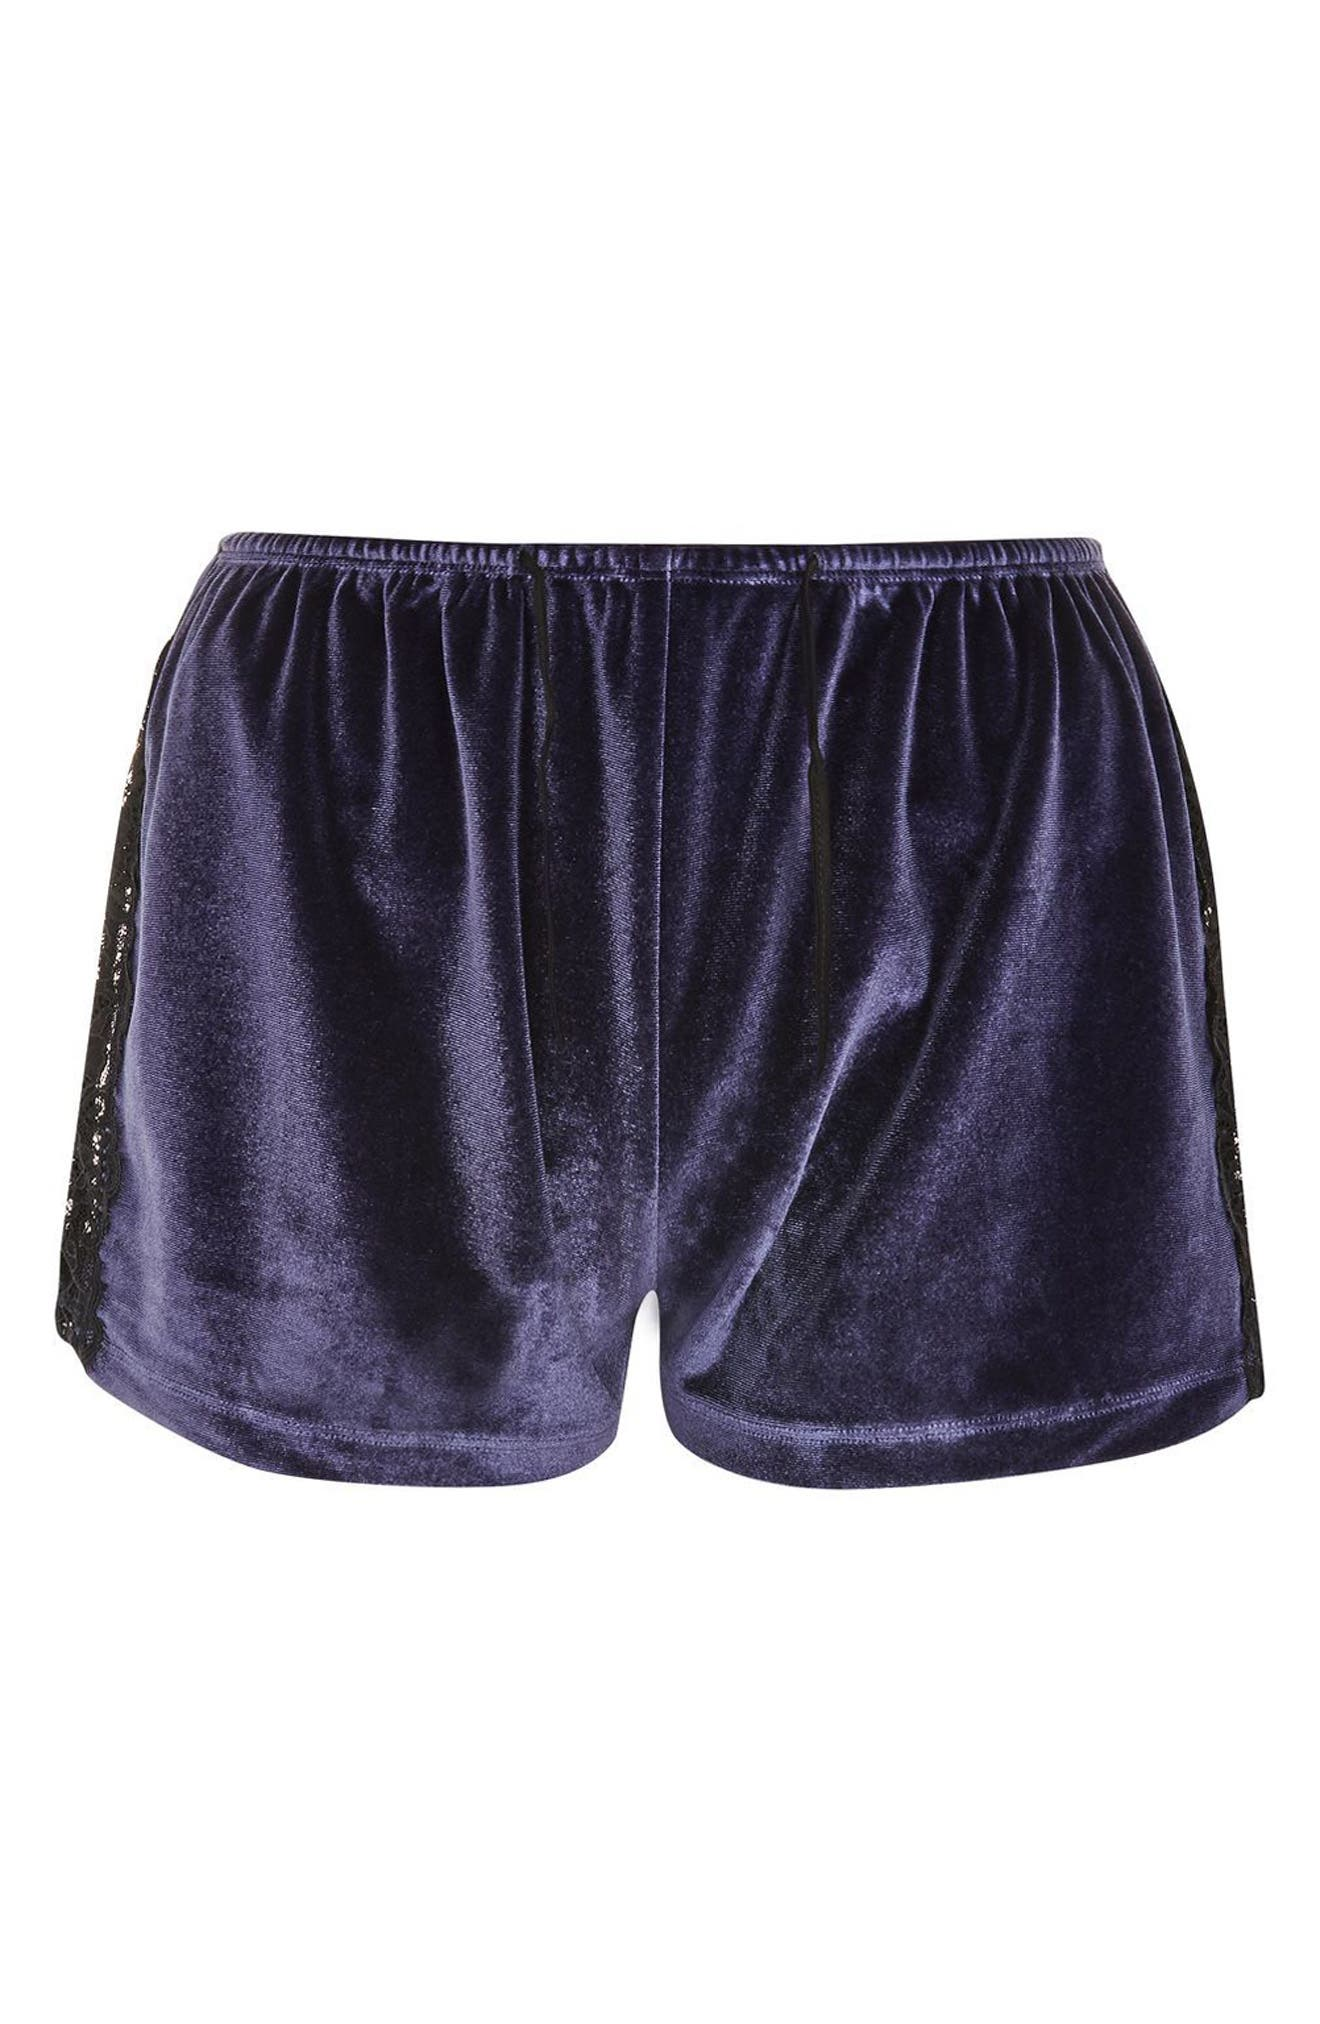 Nocturne Lace and Velvet Pajama Shorts,                             Alternate thumbnail 3, color,                             Navy Blue